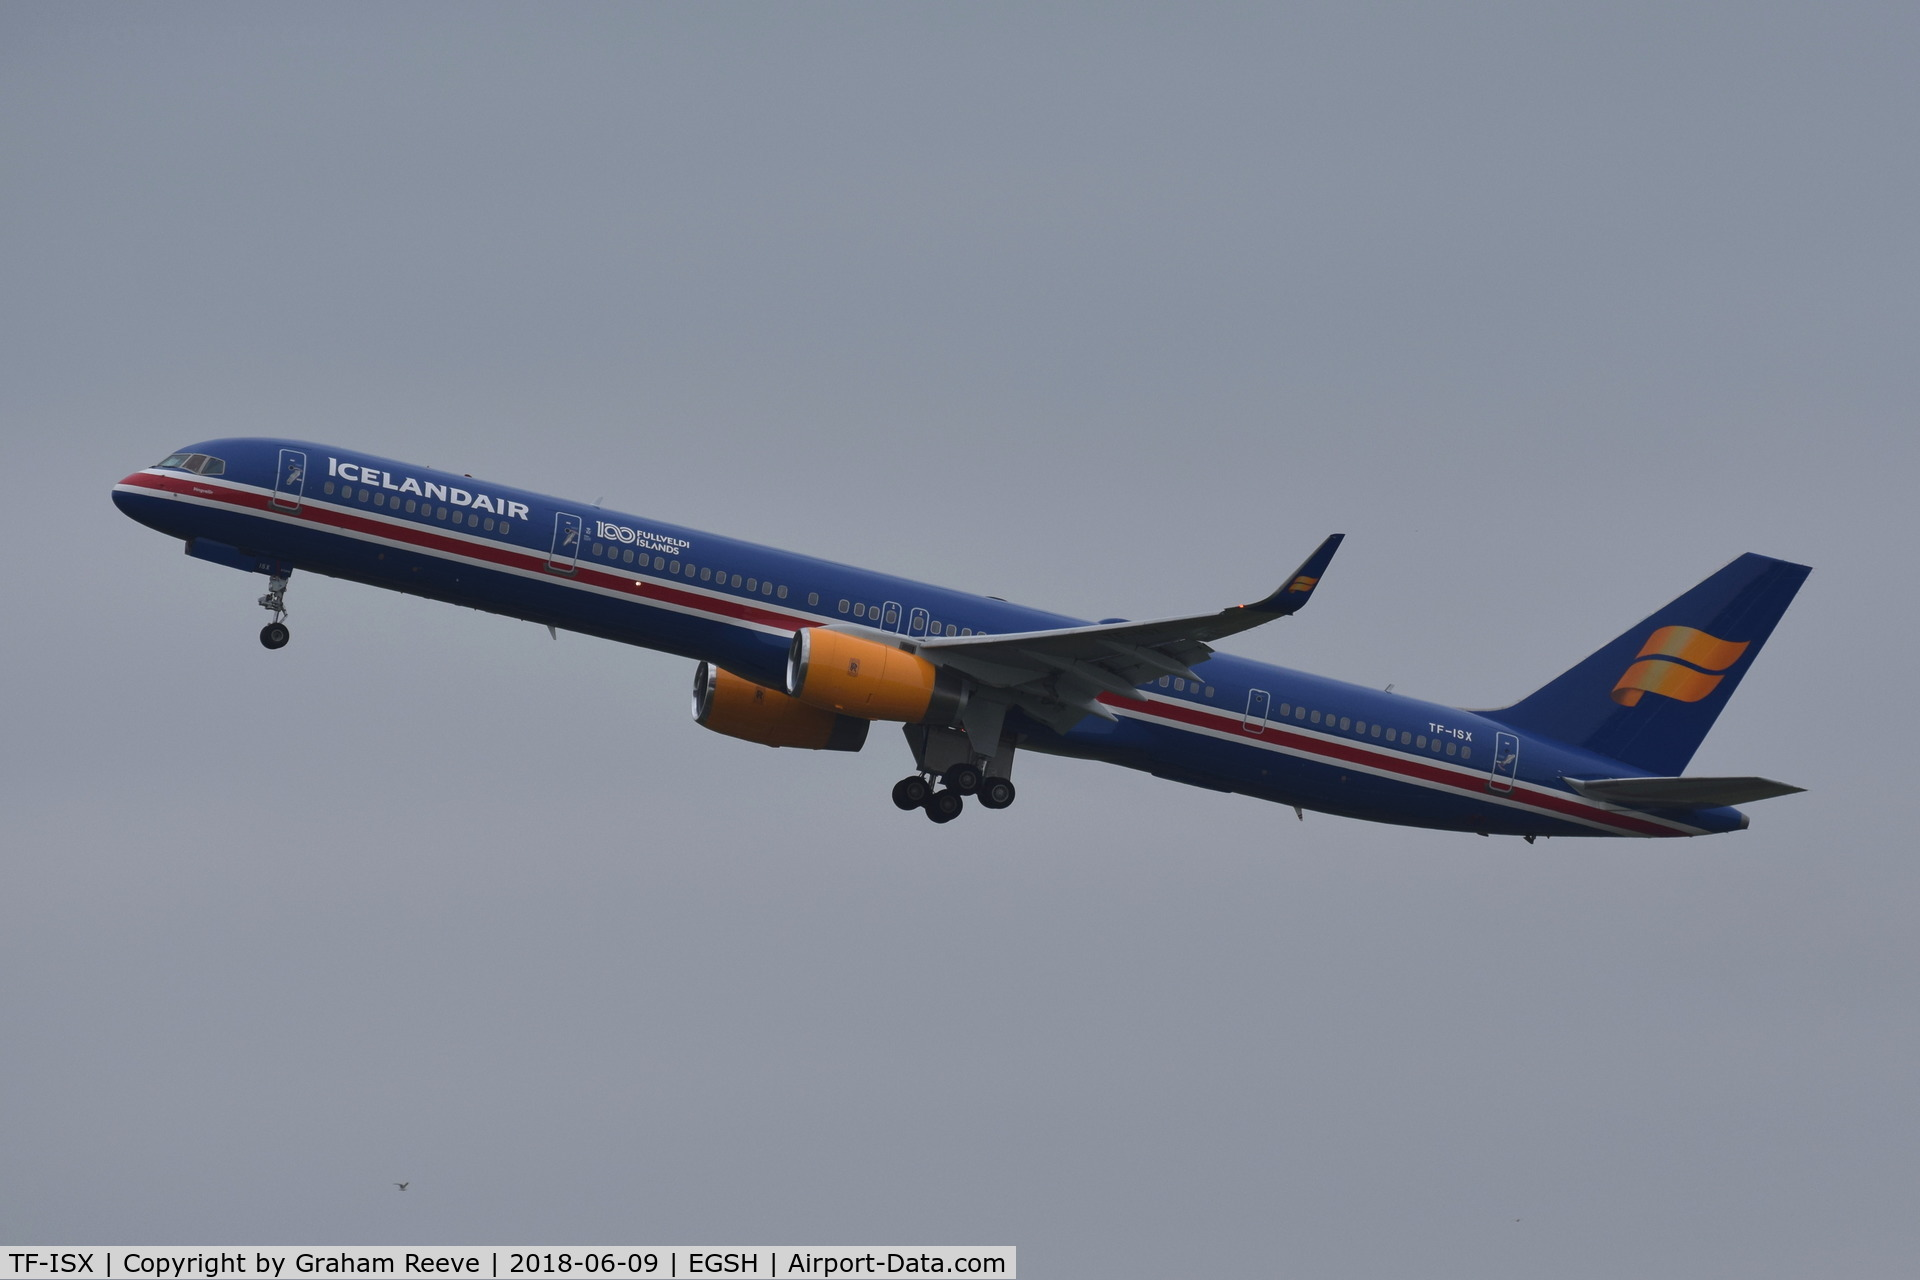 TF-ISX, 2000 Boeing 757-3E7 C/N 30179, Departing from Norwich.